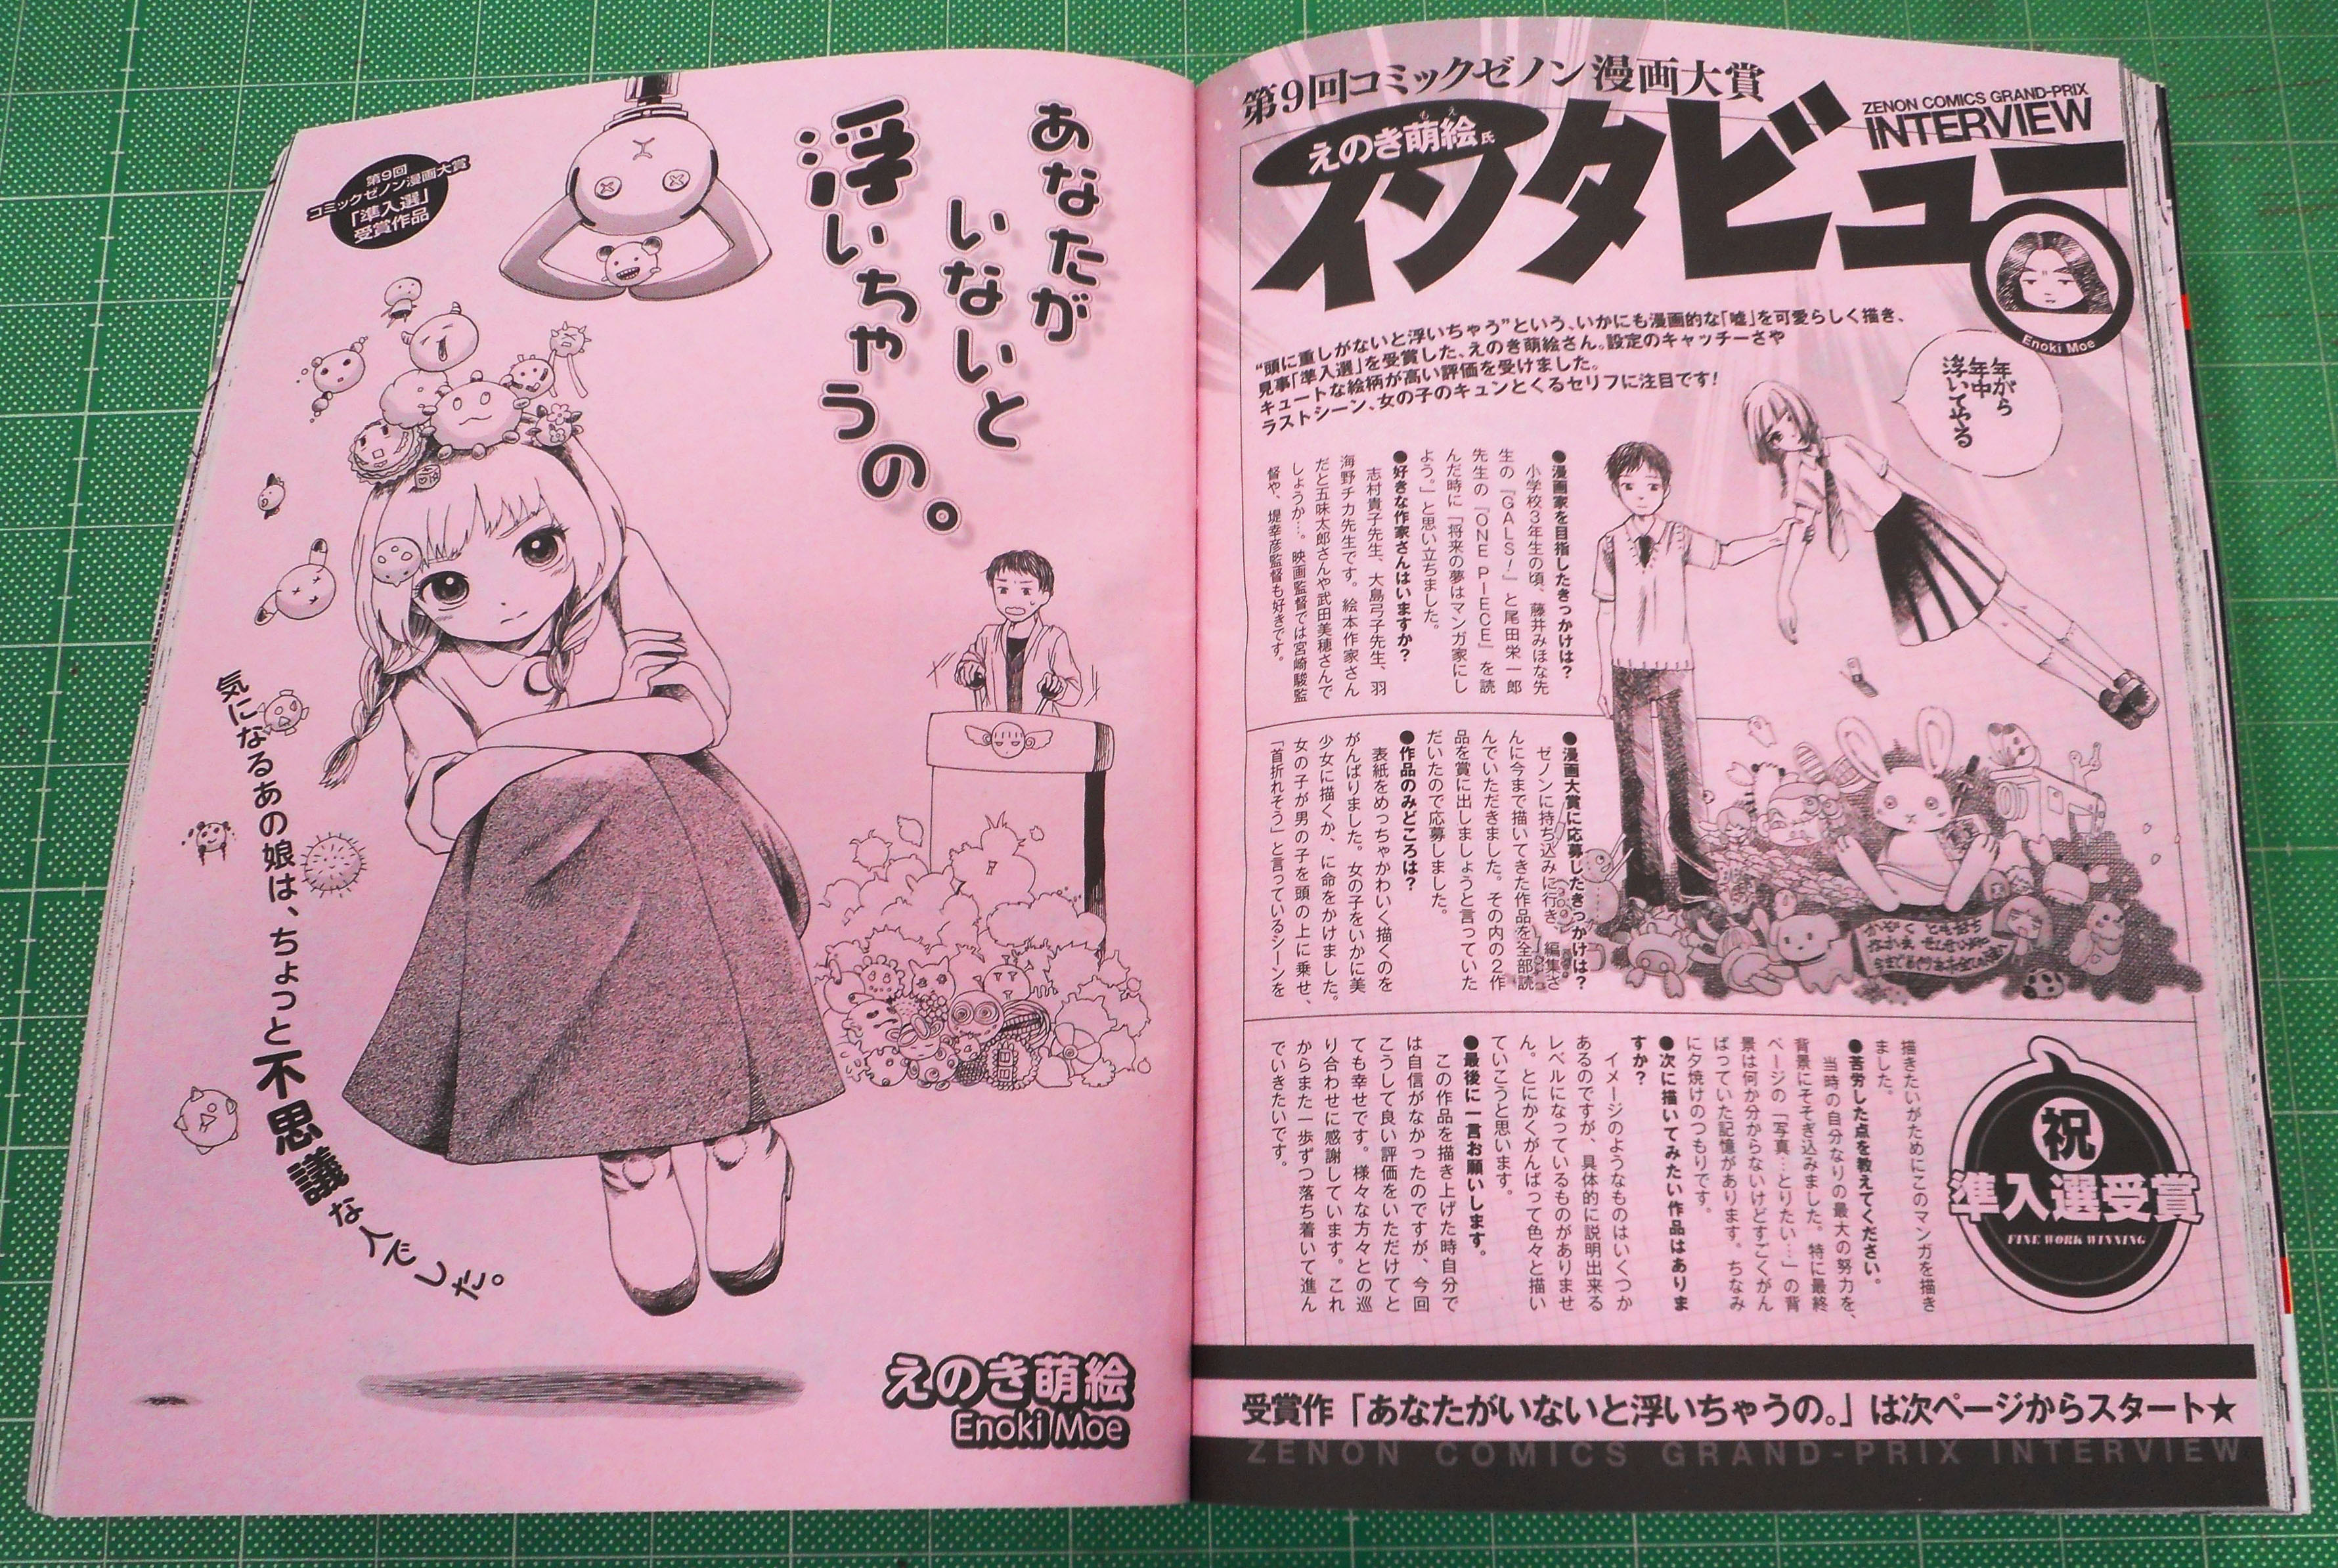 The winner's manga is published along with the artist's interview.